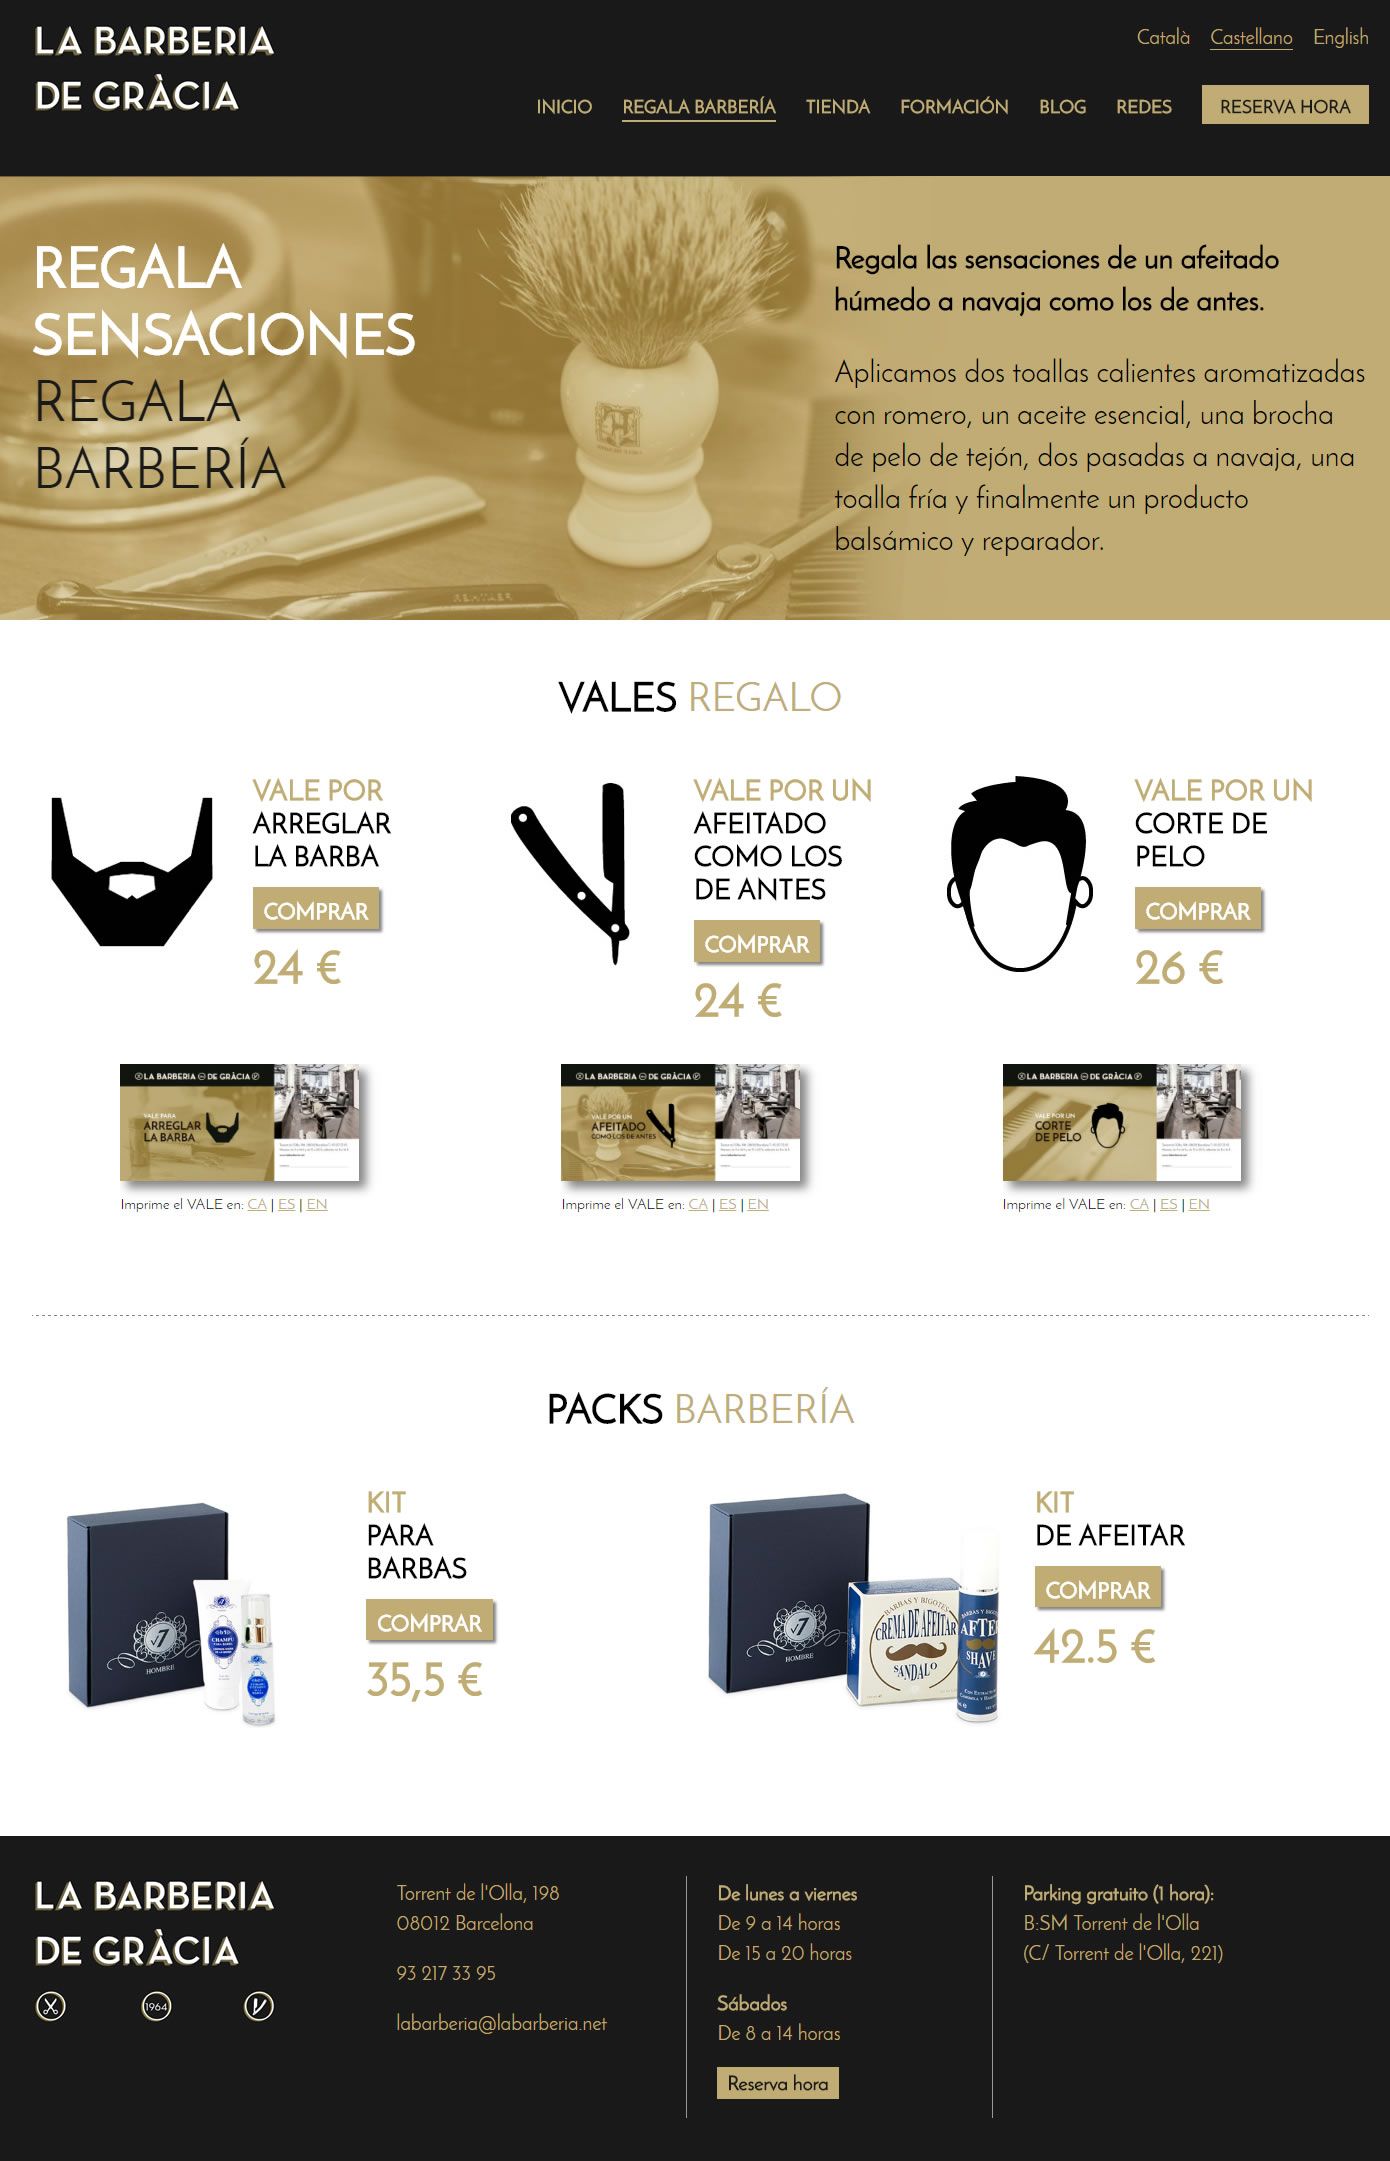 La Barberia de Gràcia - Vouchers and packs